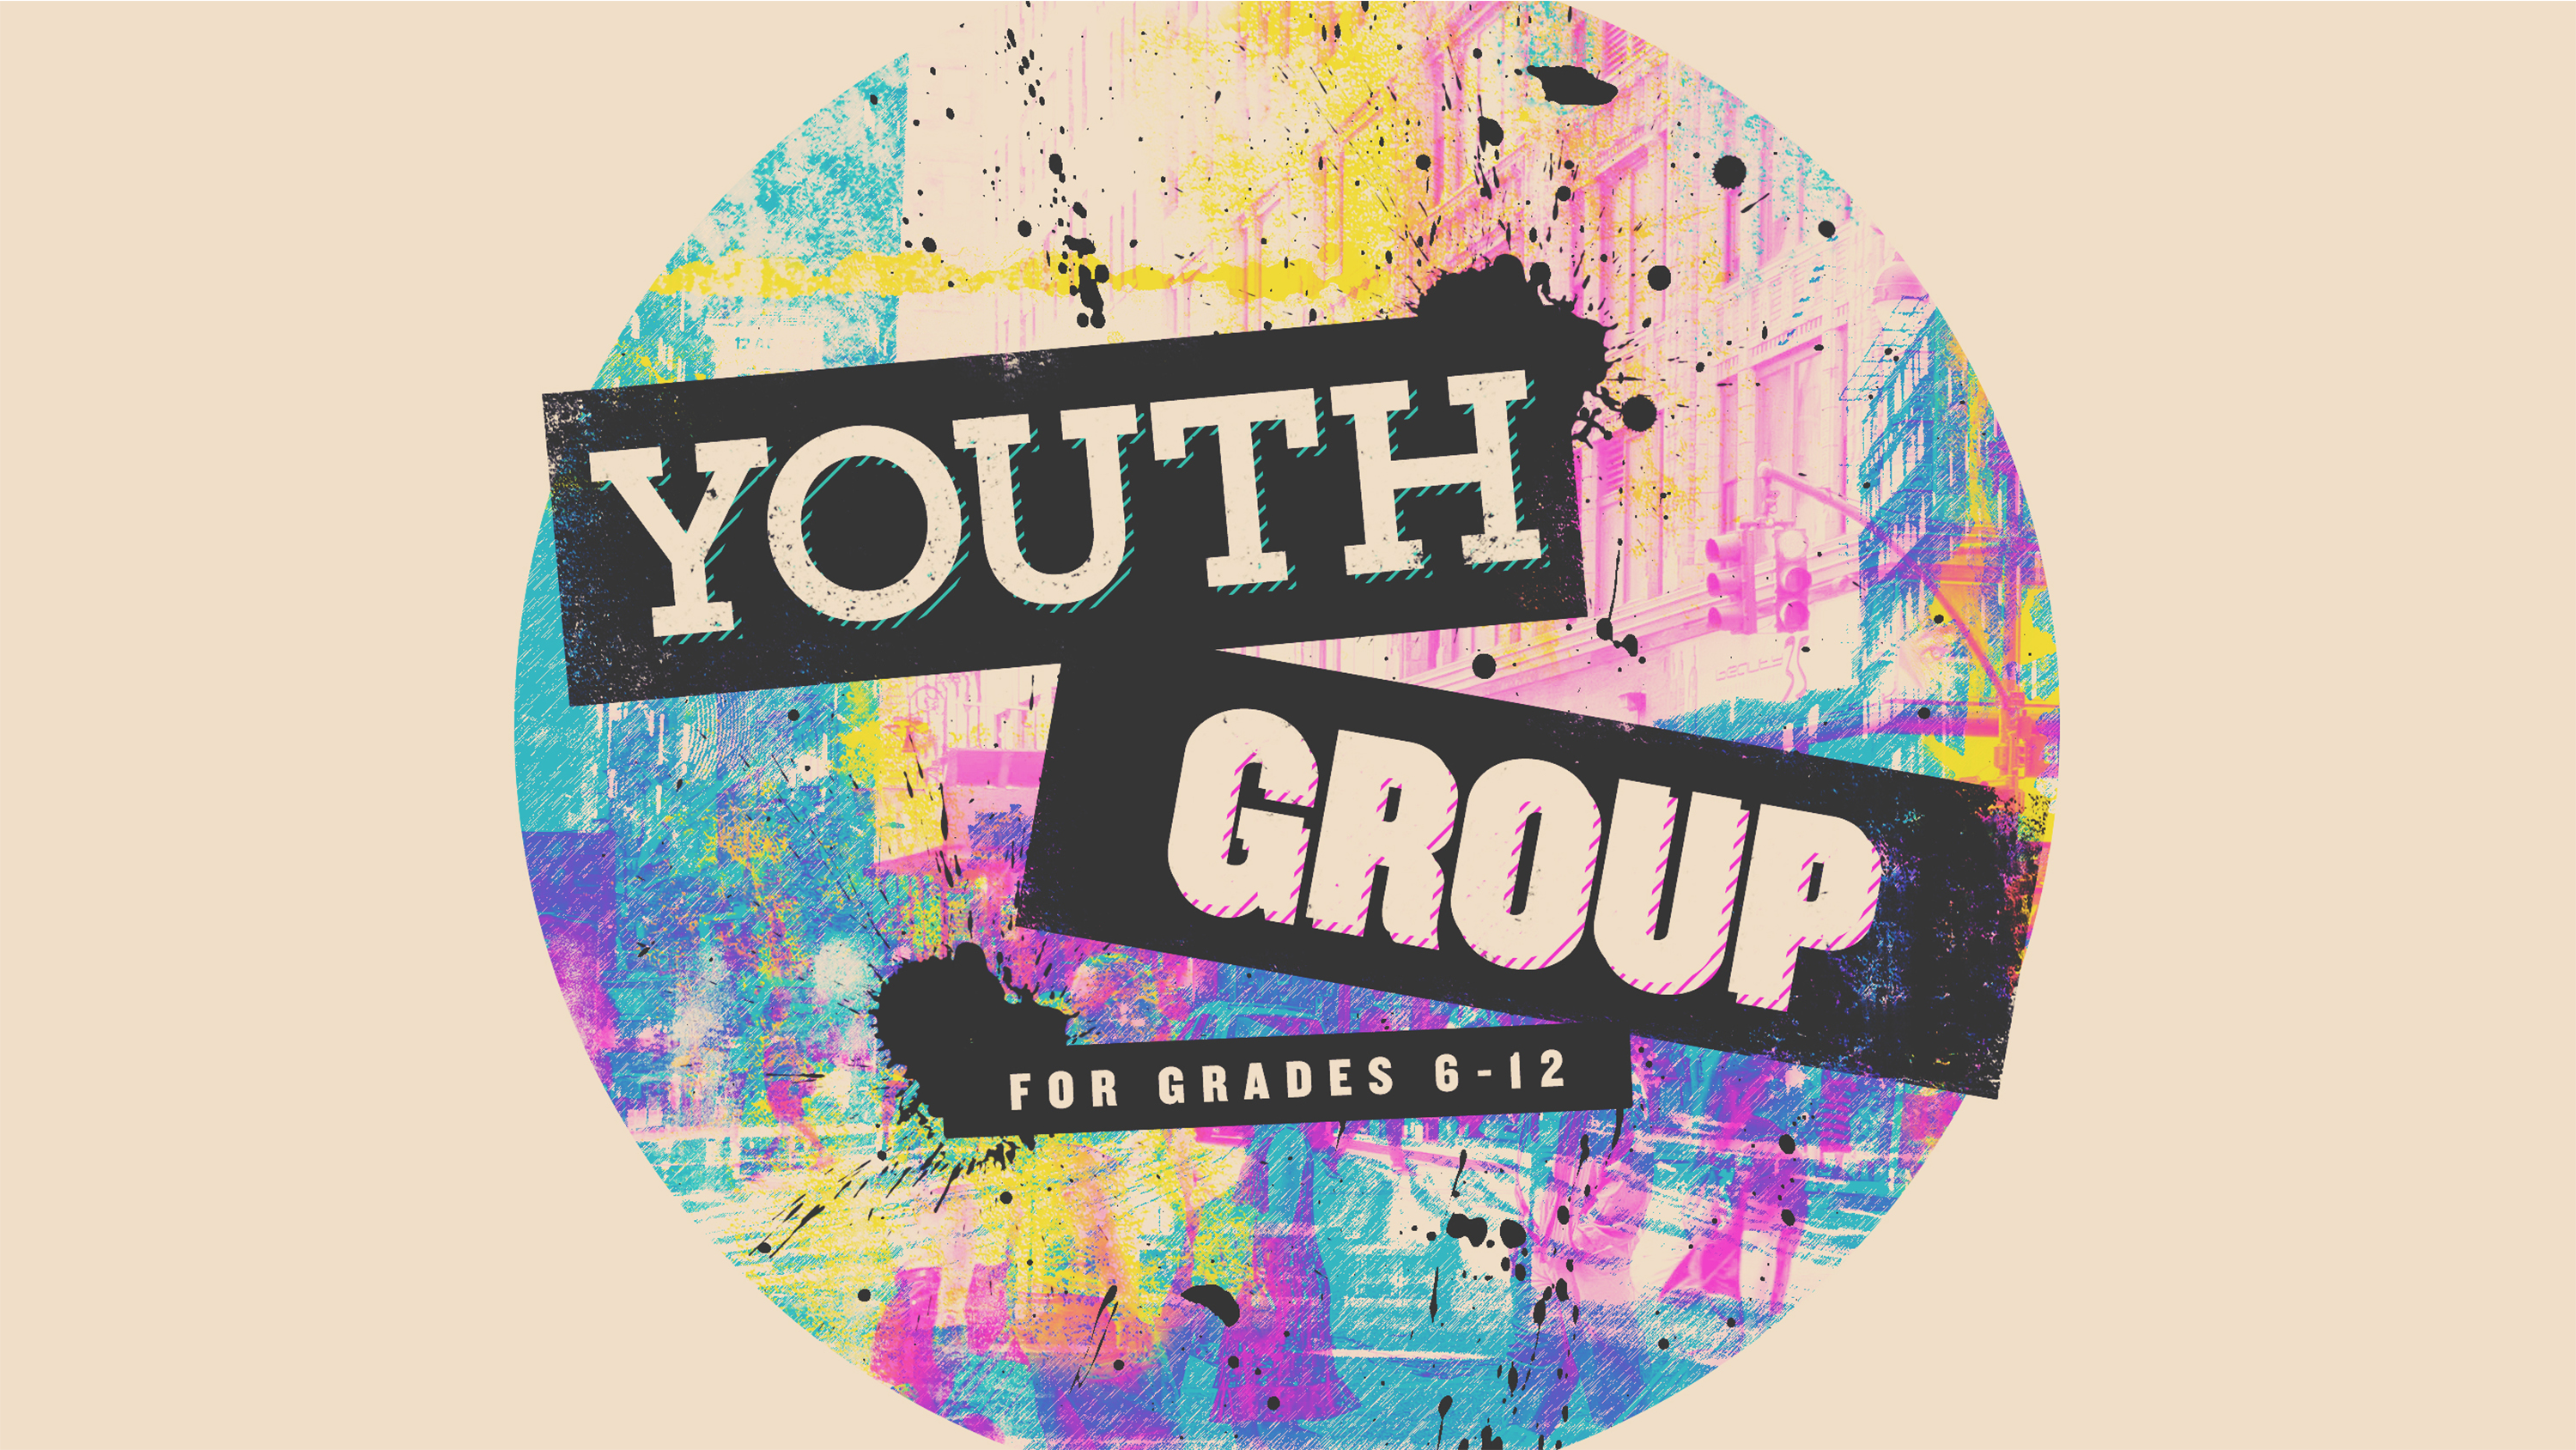 Monitor_Youth Group 2018 image